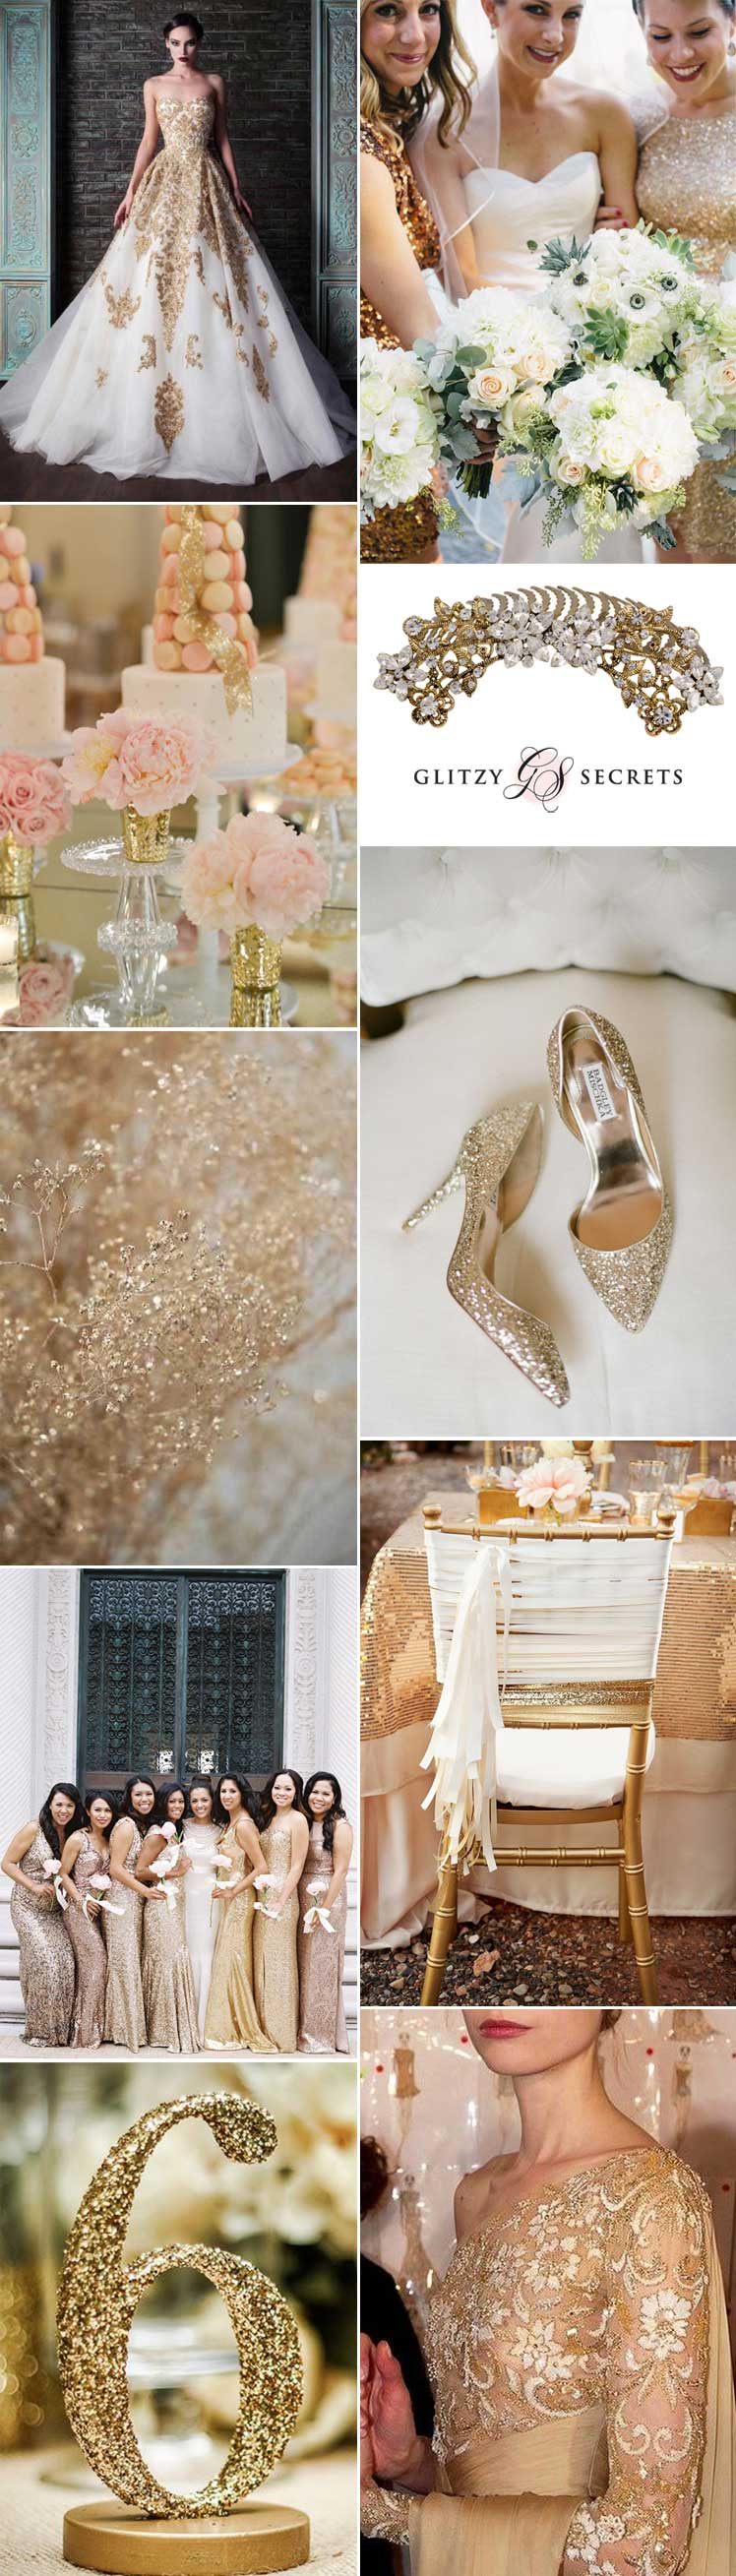 Gorgeous gold wedding theme ideas for your big day